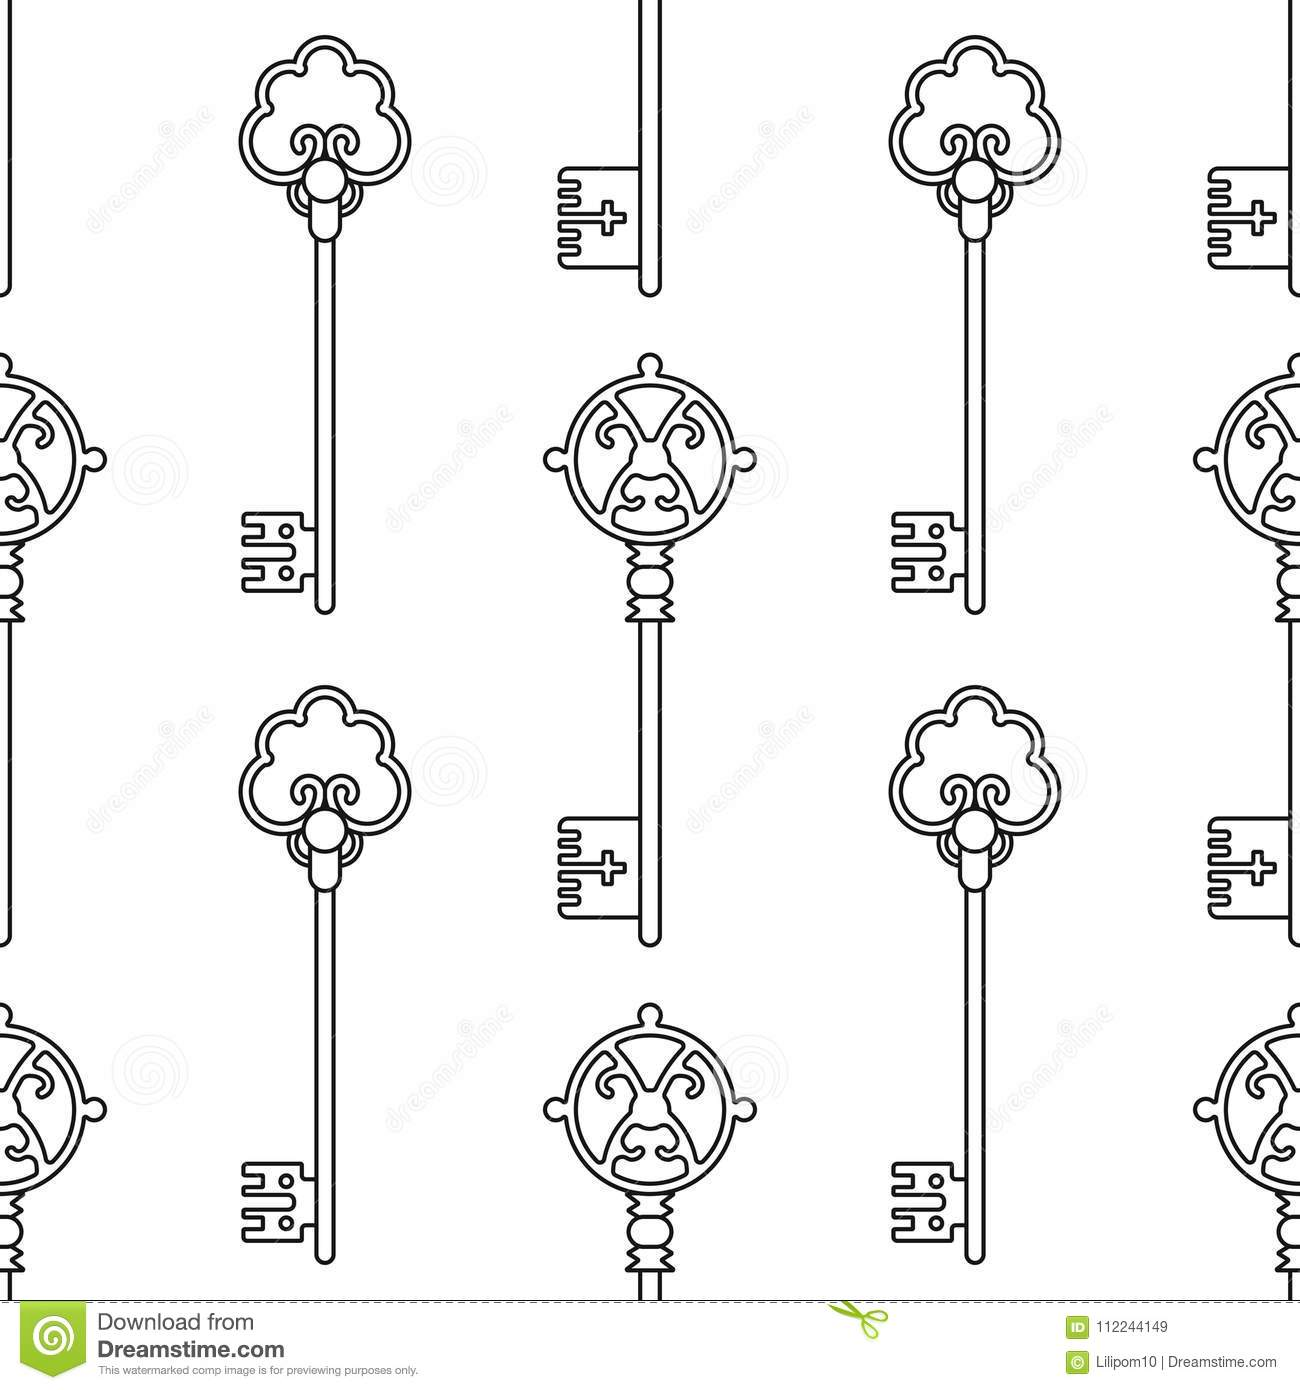 Vintage Keys Black And White Seamless Pattern For Coloring Books Pages Vector Illustration 112244149 Megapixl